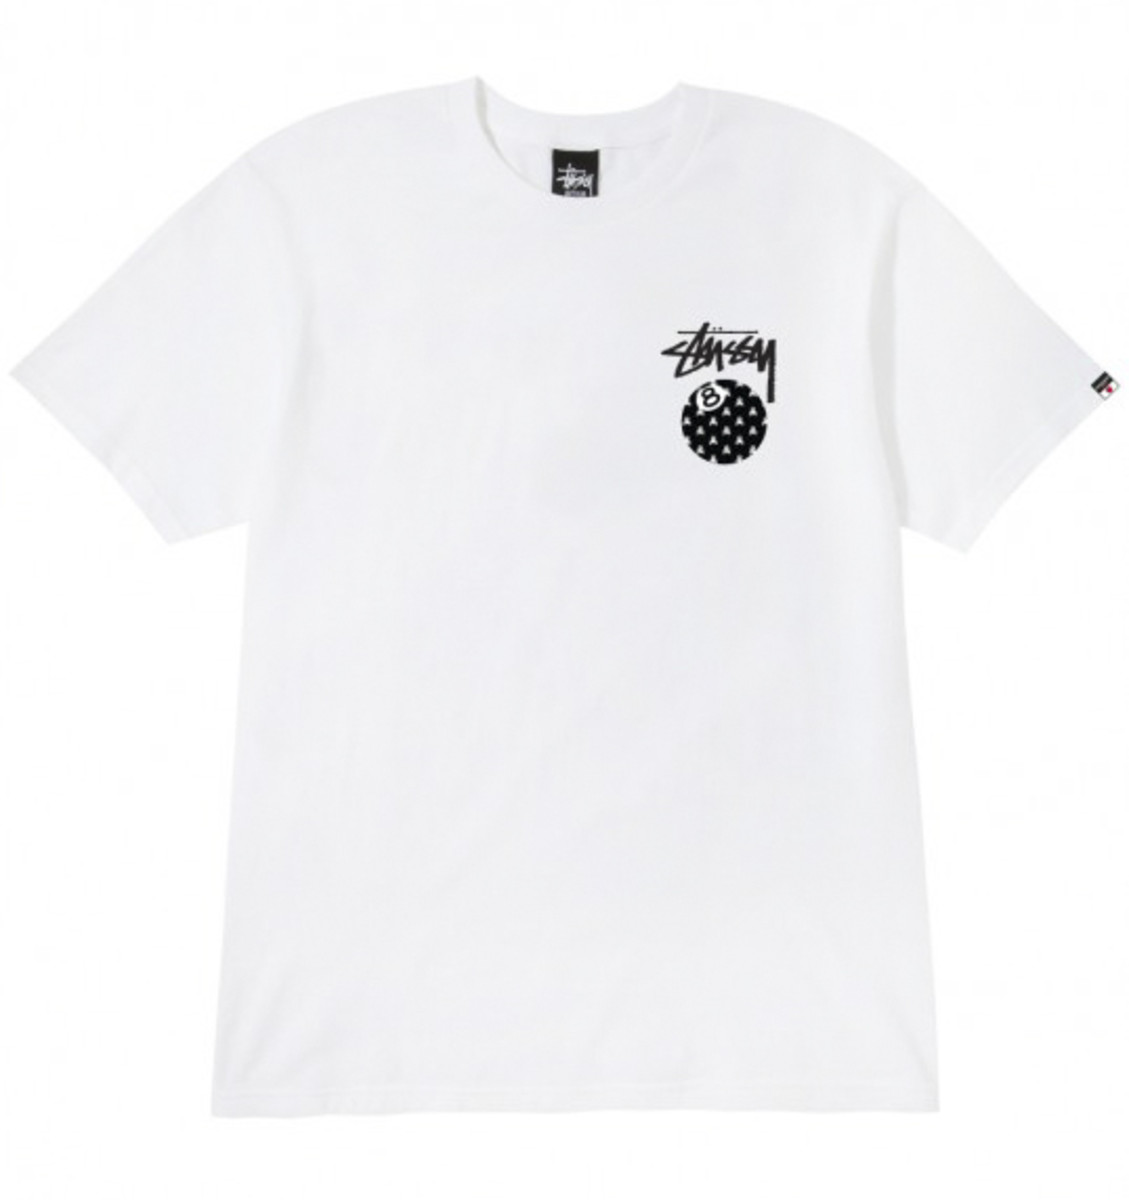 stussy-mastermind-japan-release-1-available-now-08